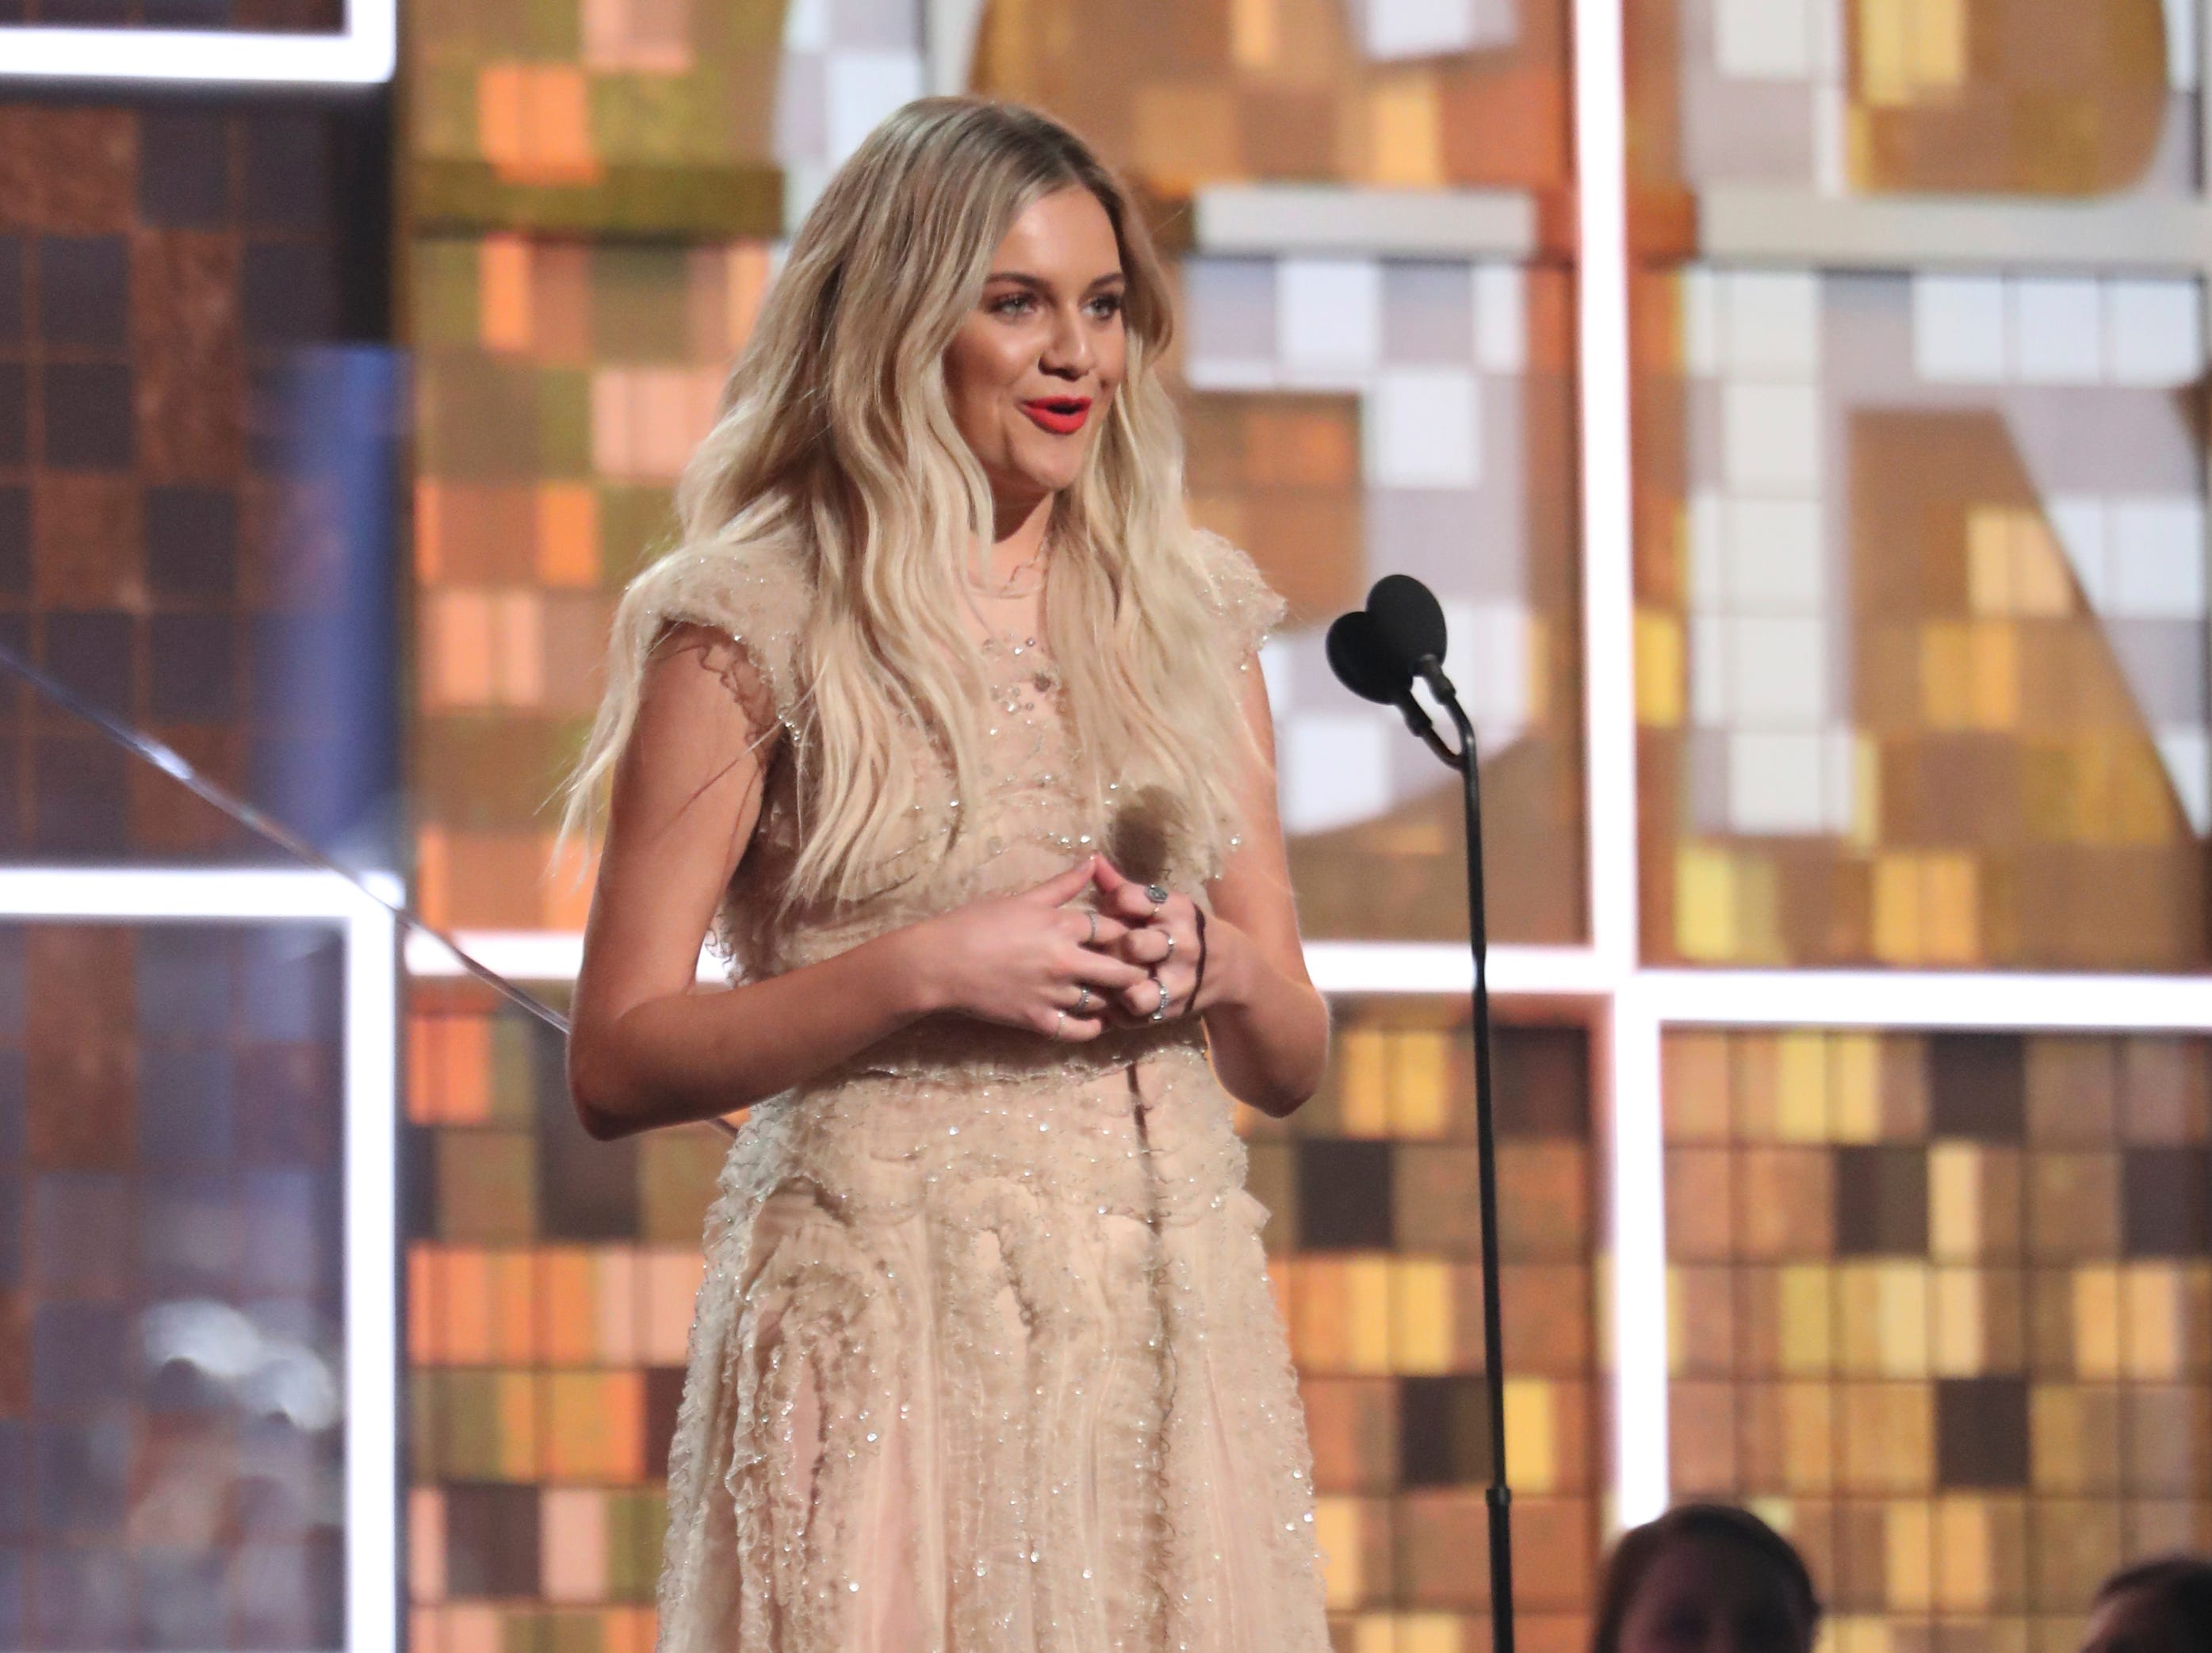 Kelsea Ballerini introduces a performance by Brandi Carlile at the 61st annual Grammy Awards.